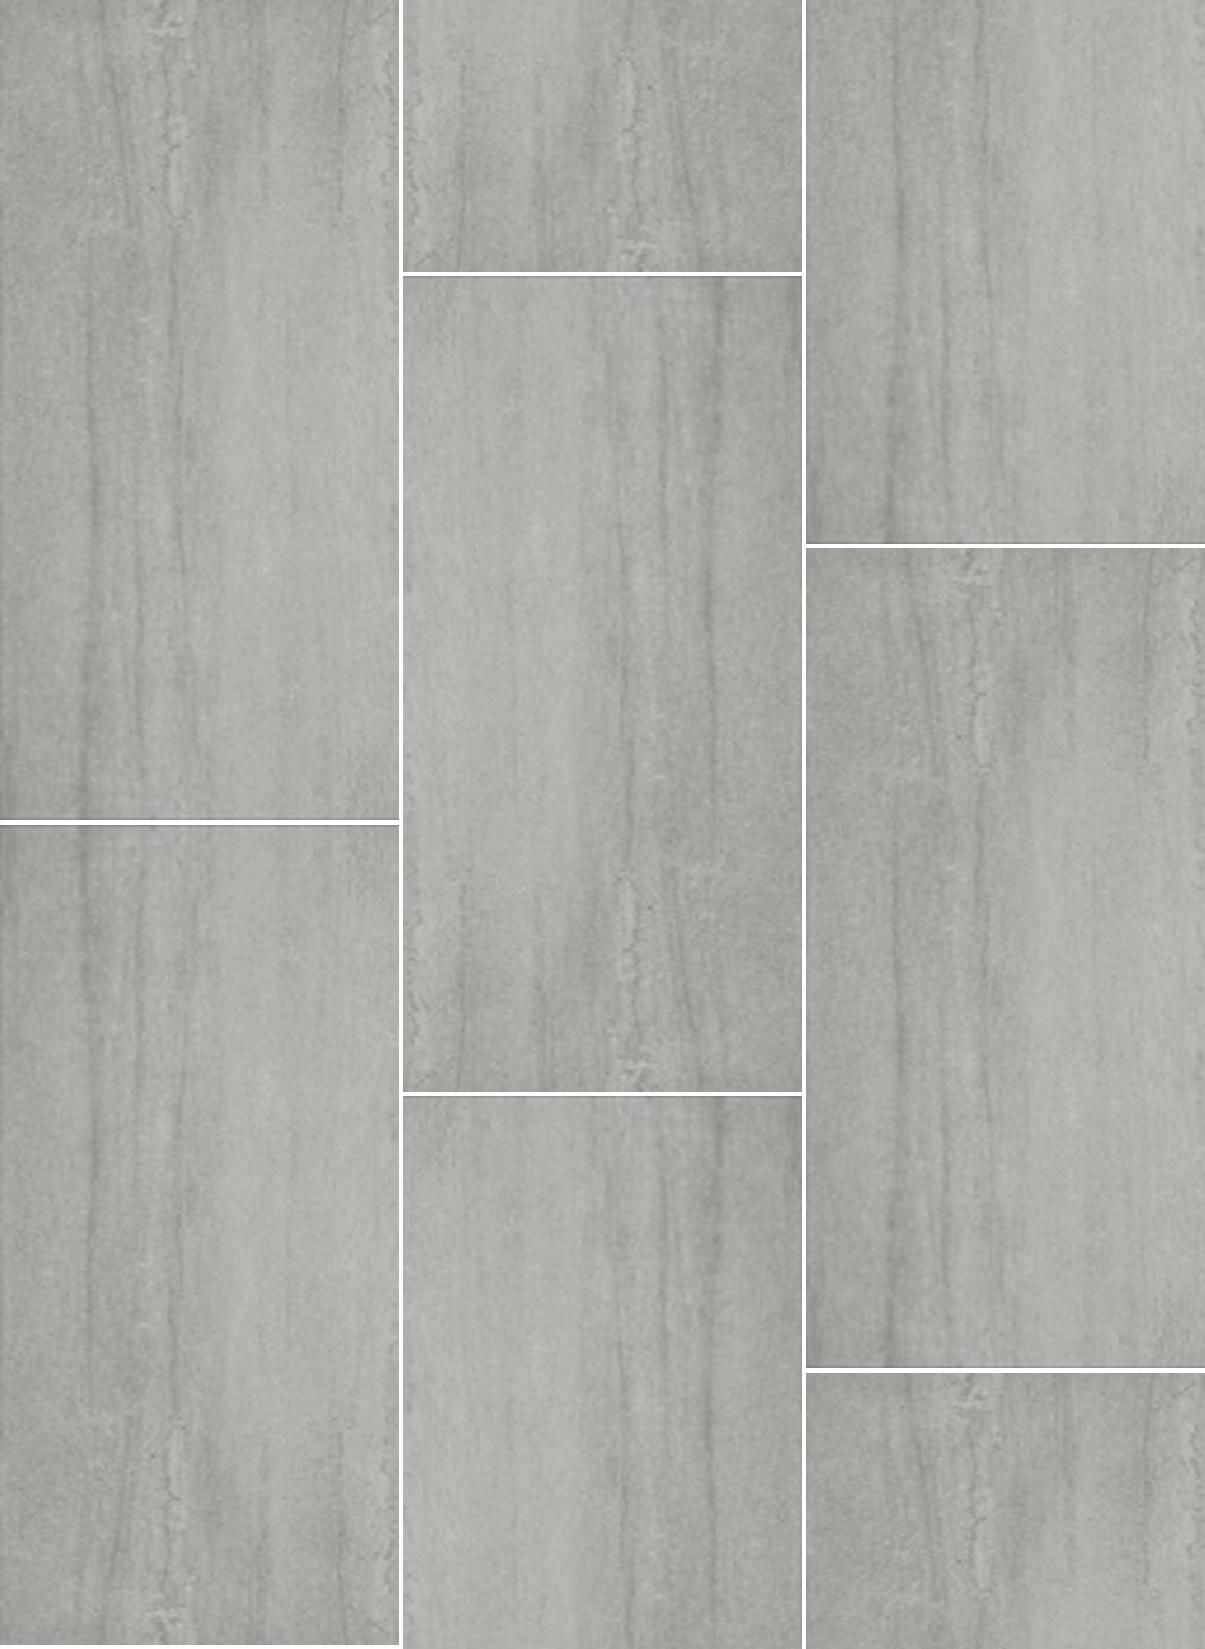 Lglimitlessdesign contest grey 1224 floor tile nick miller lglimitlessdesign contest grey 1224 floor tile nick miller design dailygadgetfo Choice Image